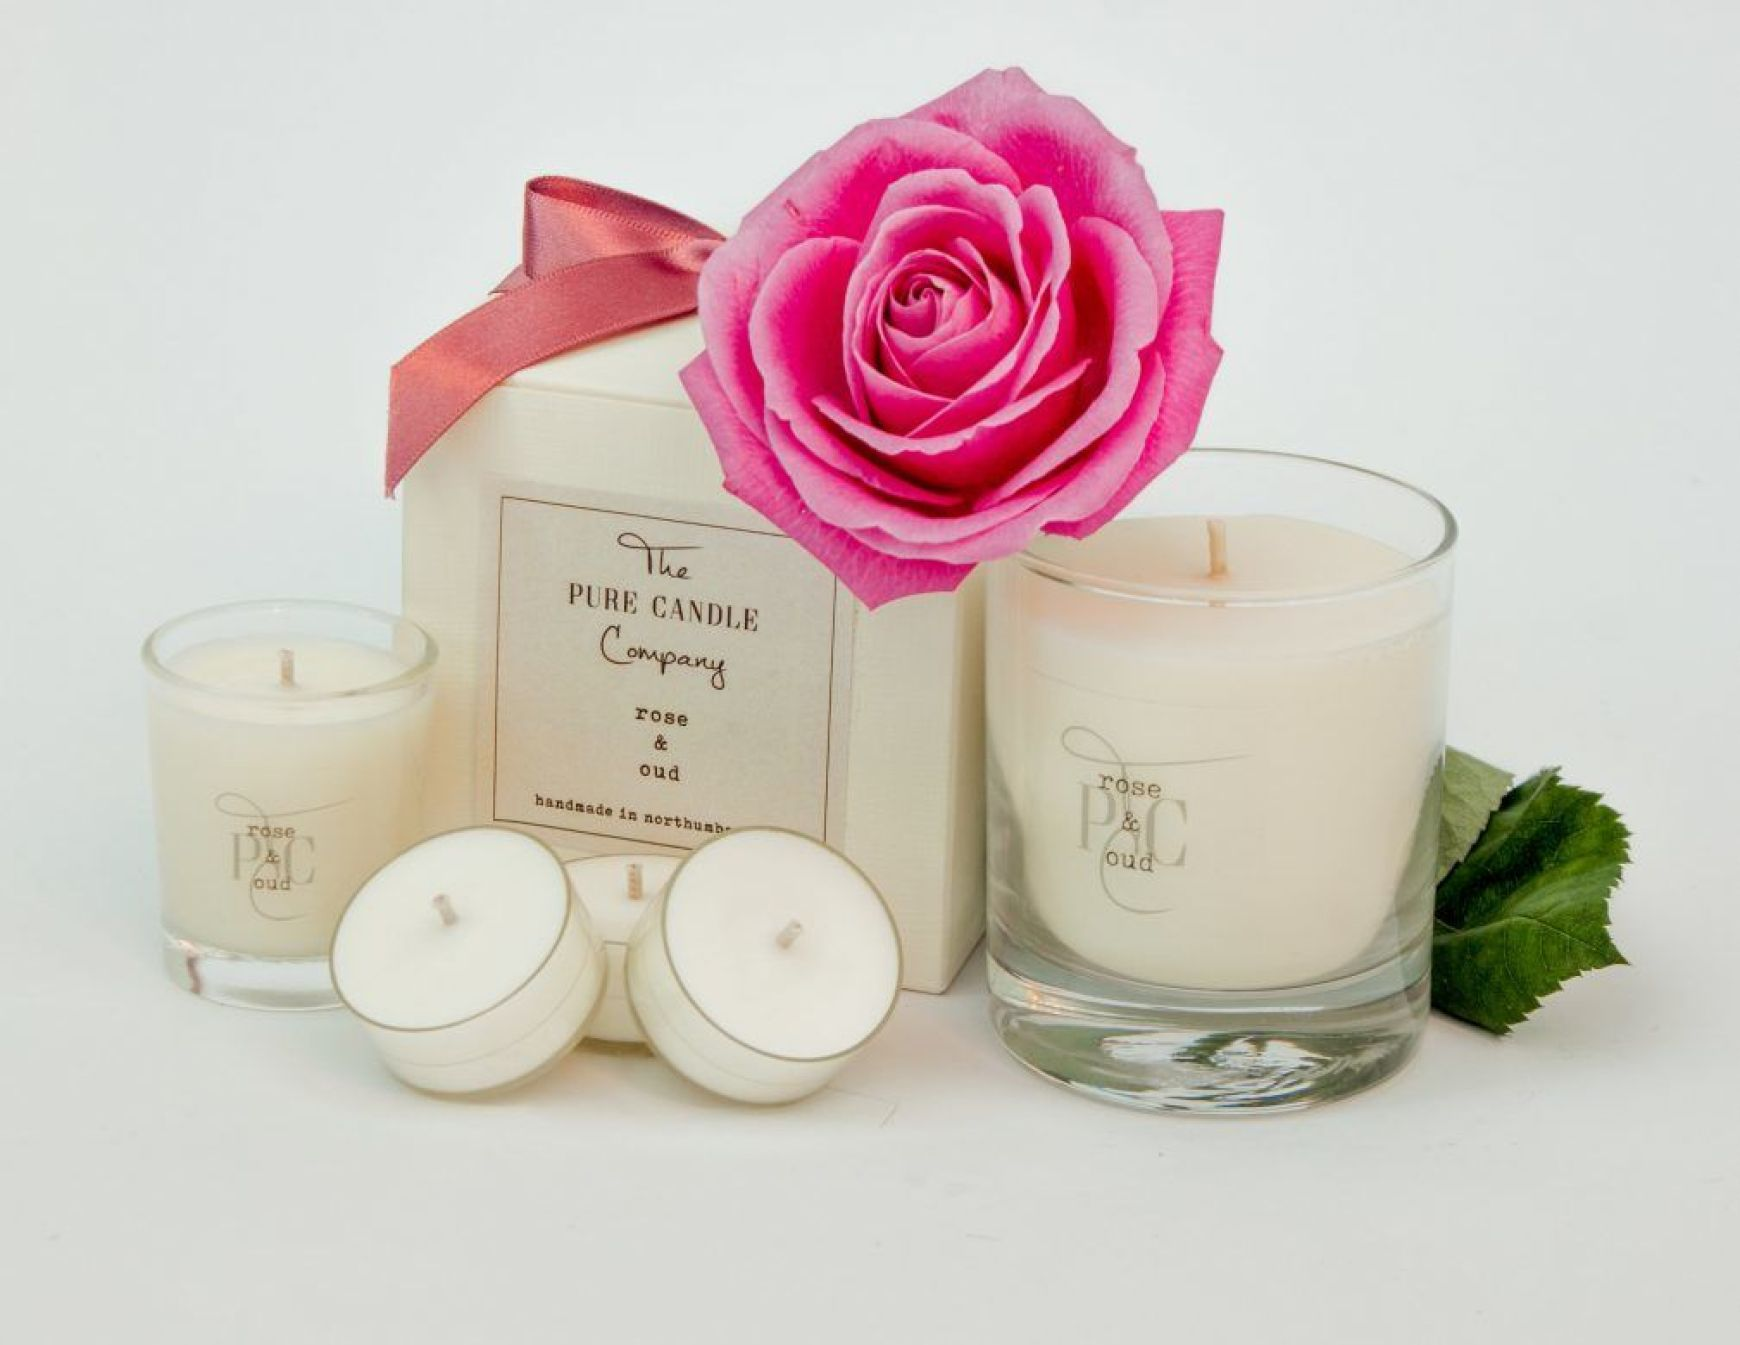 Rose & Oud Candle The Pure Candle Company